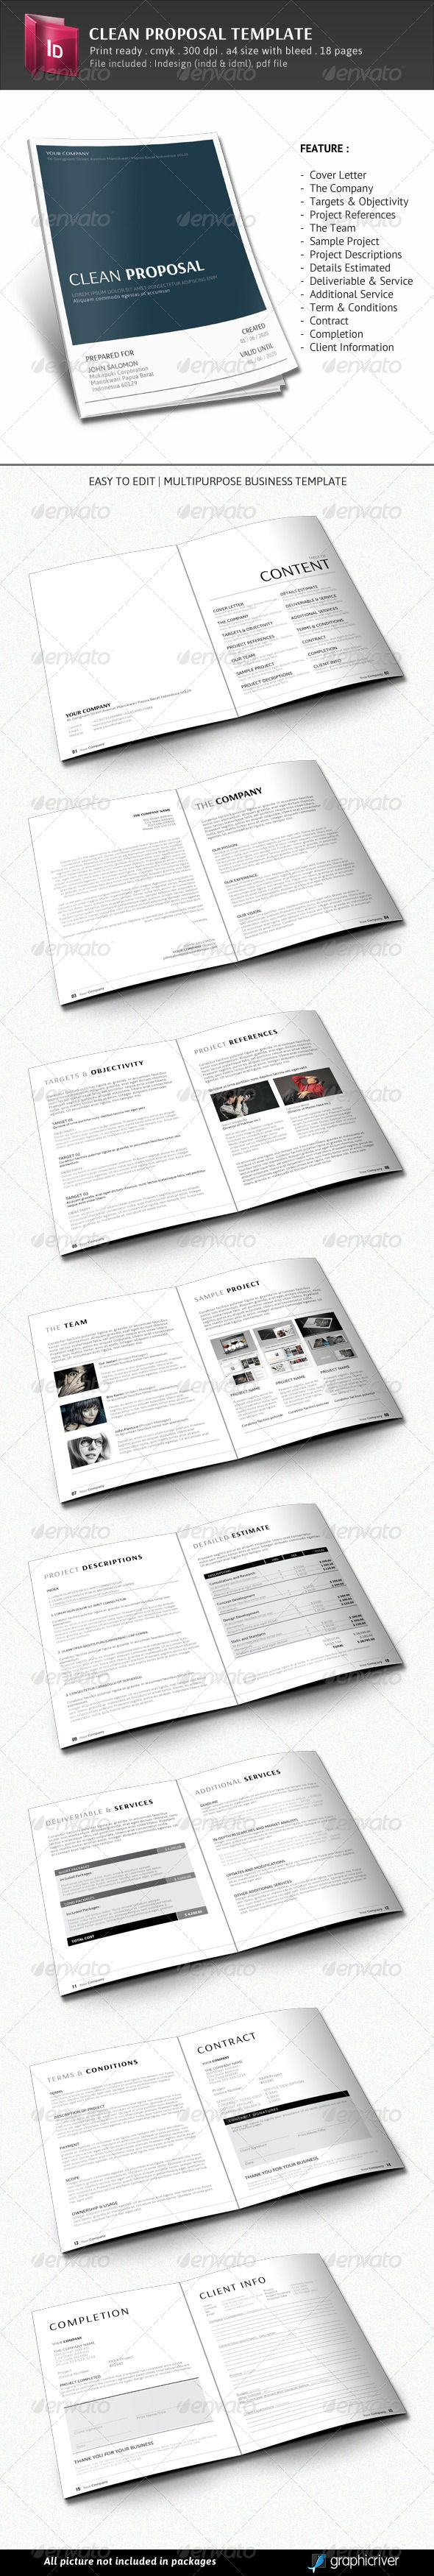 Commercial Proposal Format Stunning 226 Best Proposal & Invoice Templates Images On Pinterest